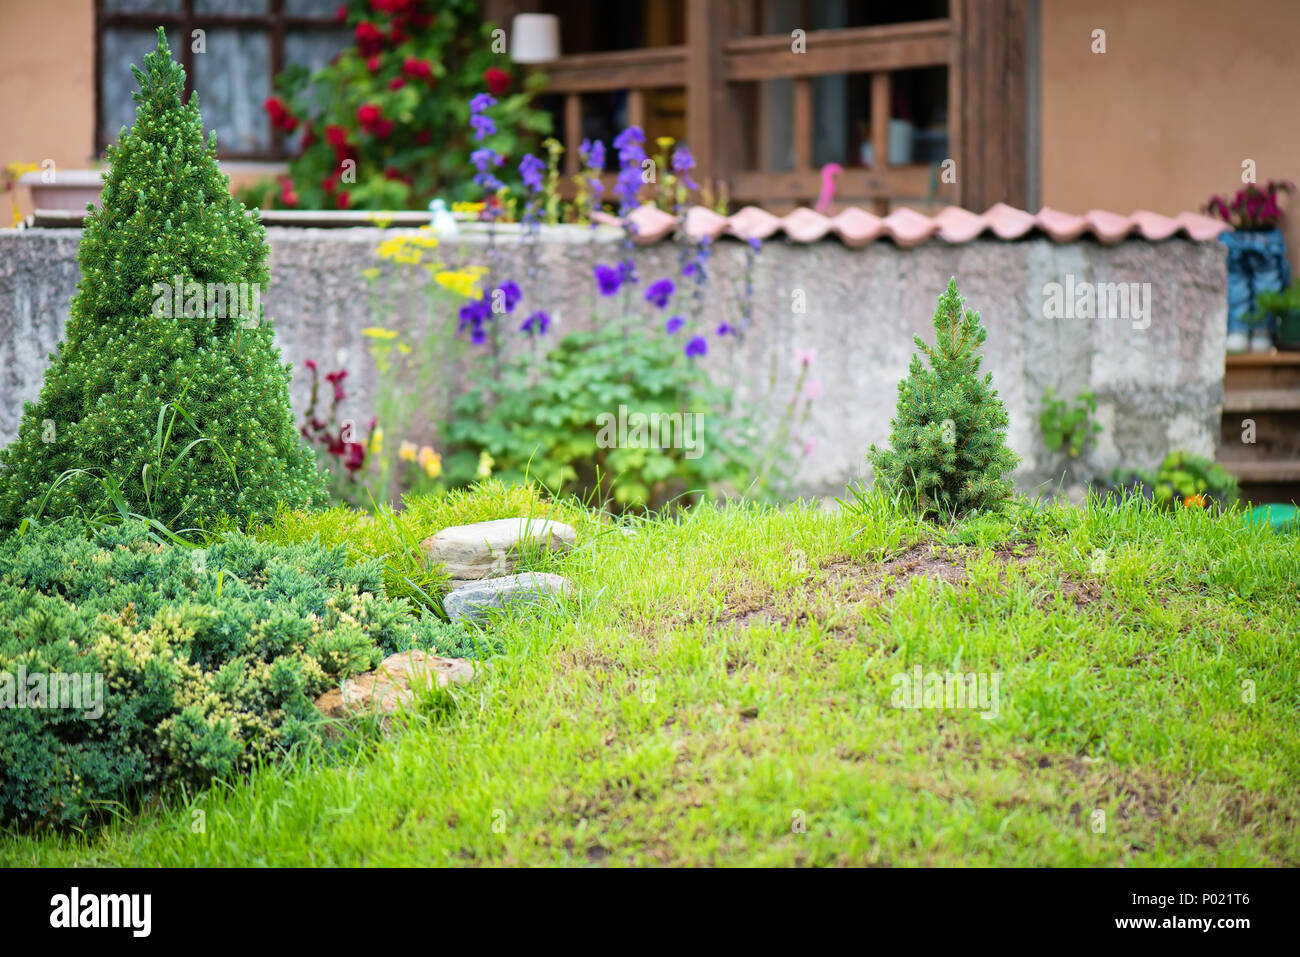 Modern garden with green grass and spruces in summer - Stock Image